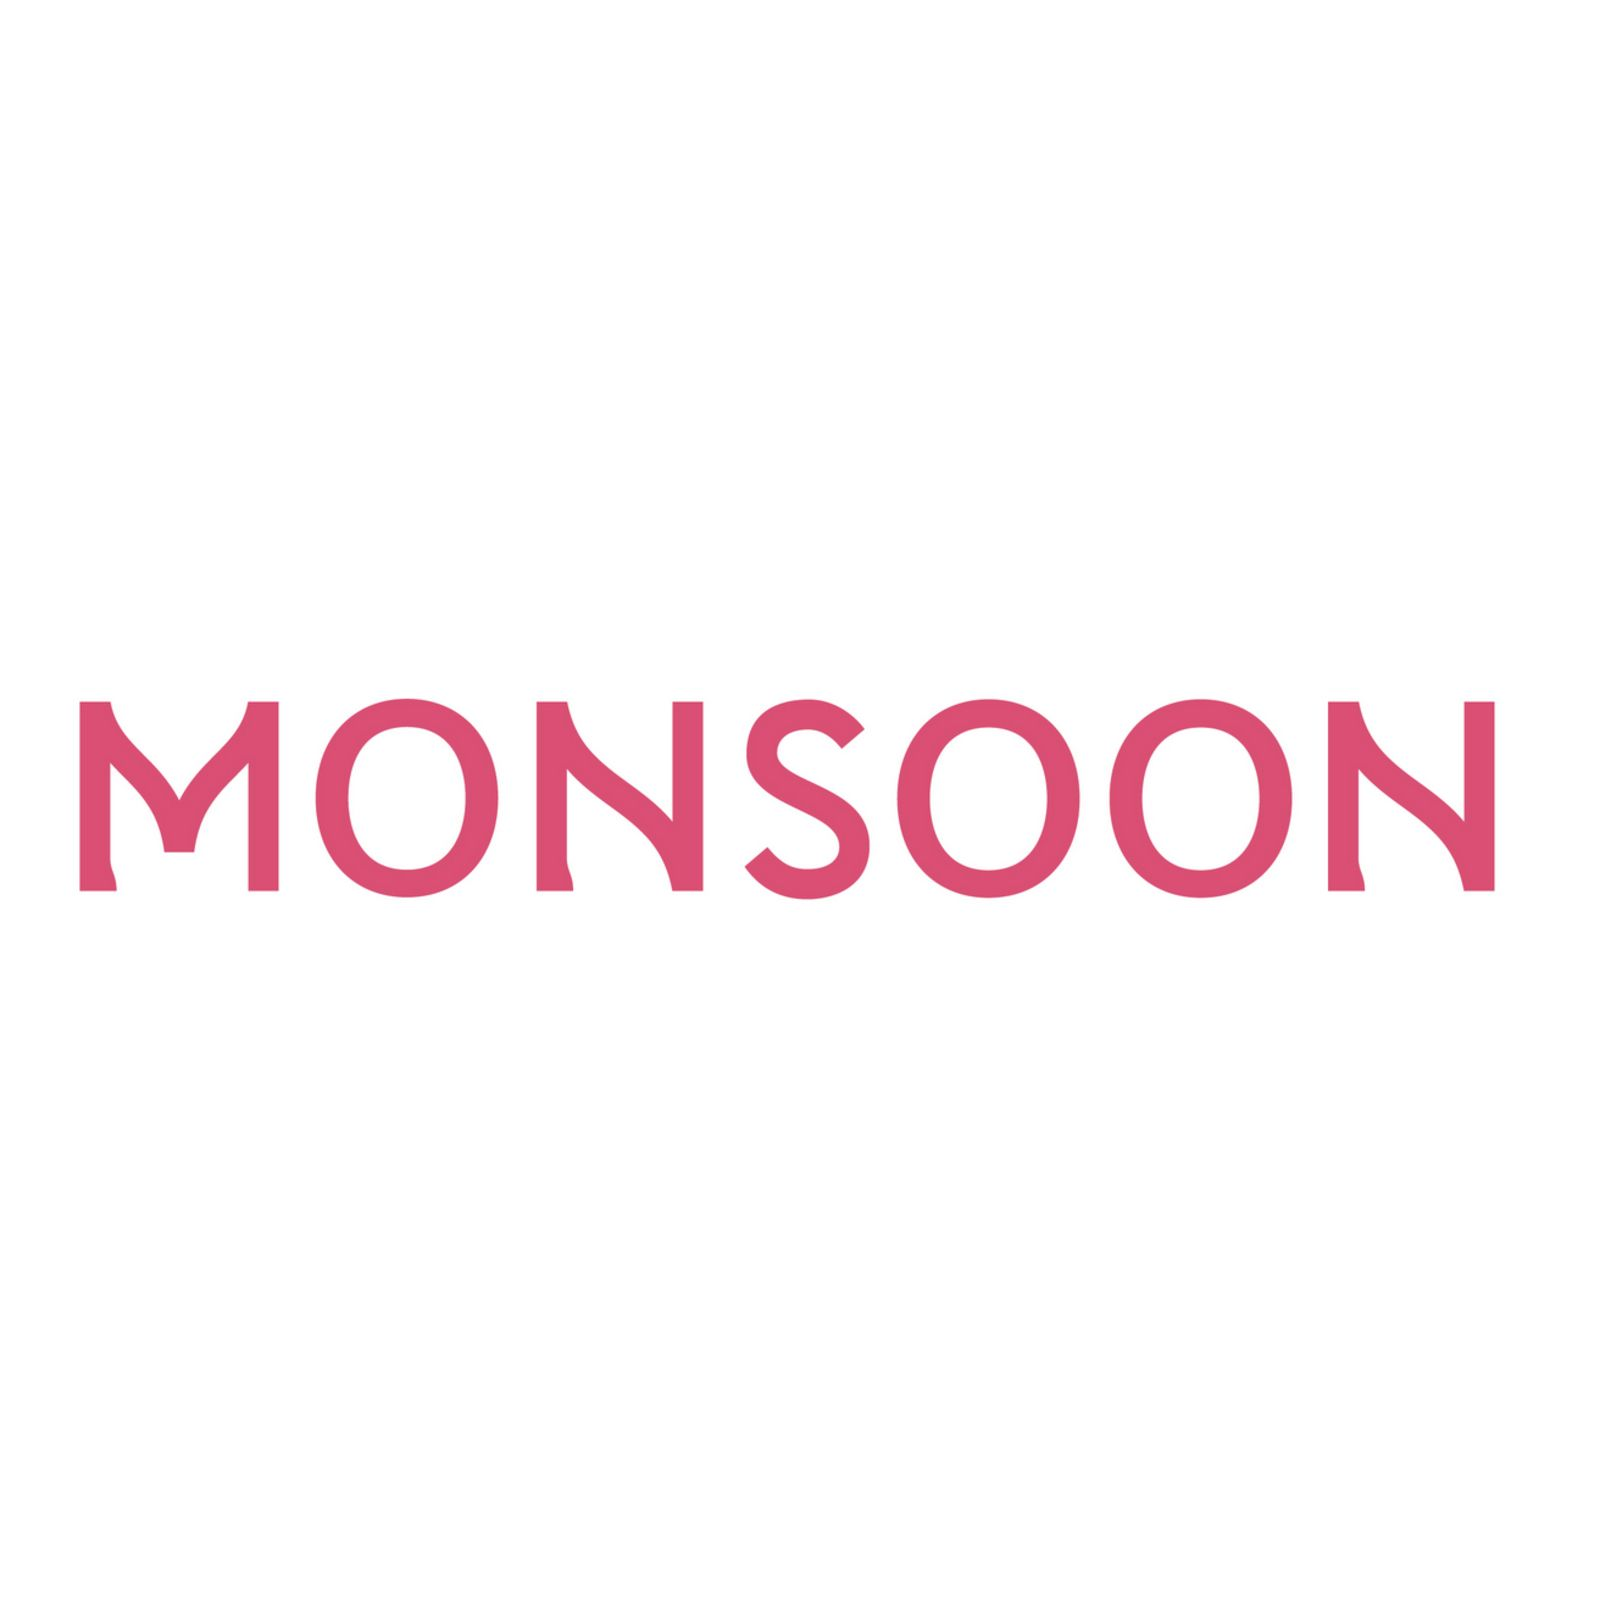 MONSOON (Image 1)